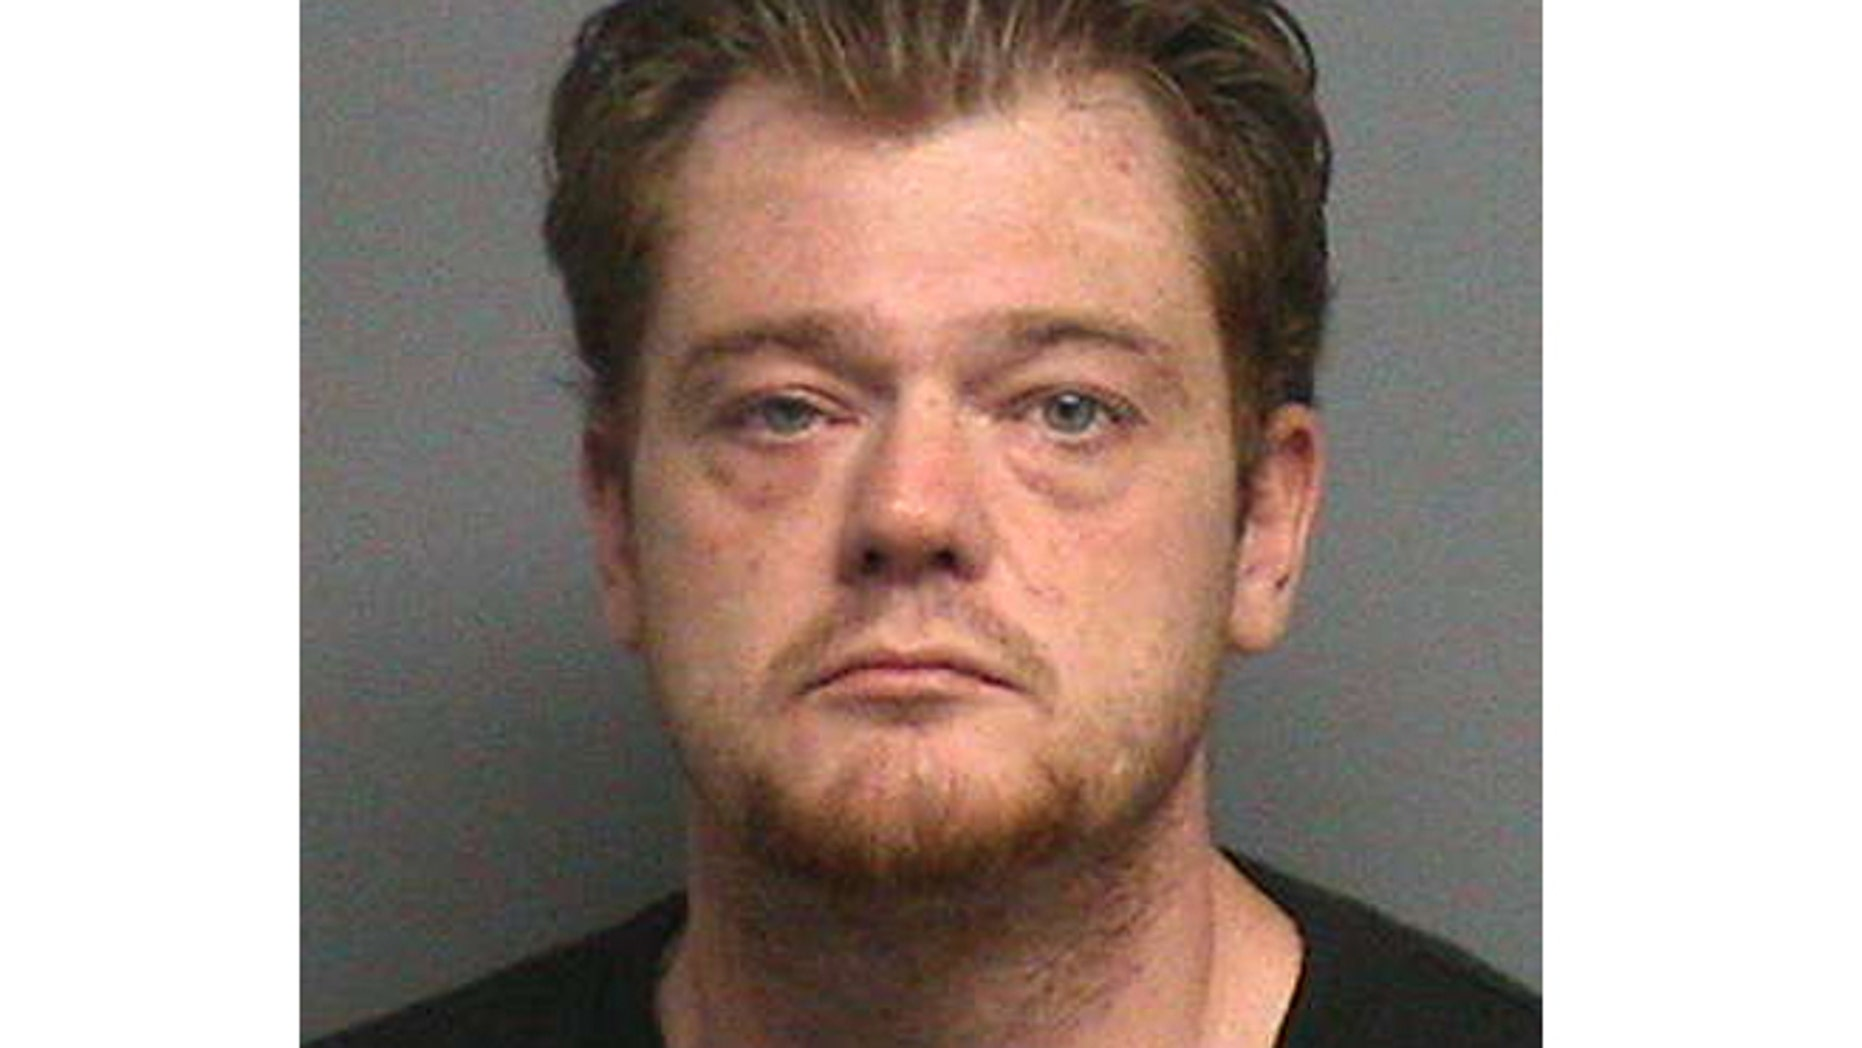 Police tell FOX 25 Scott Steverding was arrested by Waltham investigators in Cambridge on a warrant.